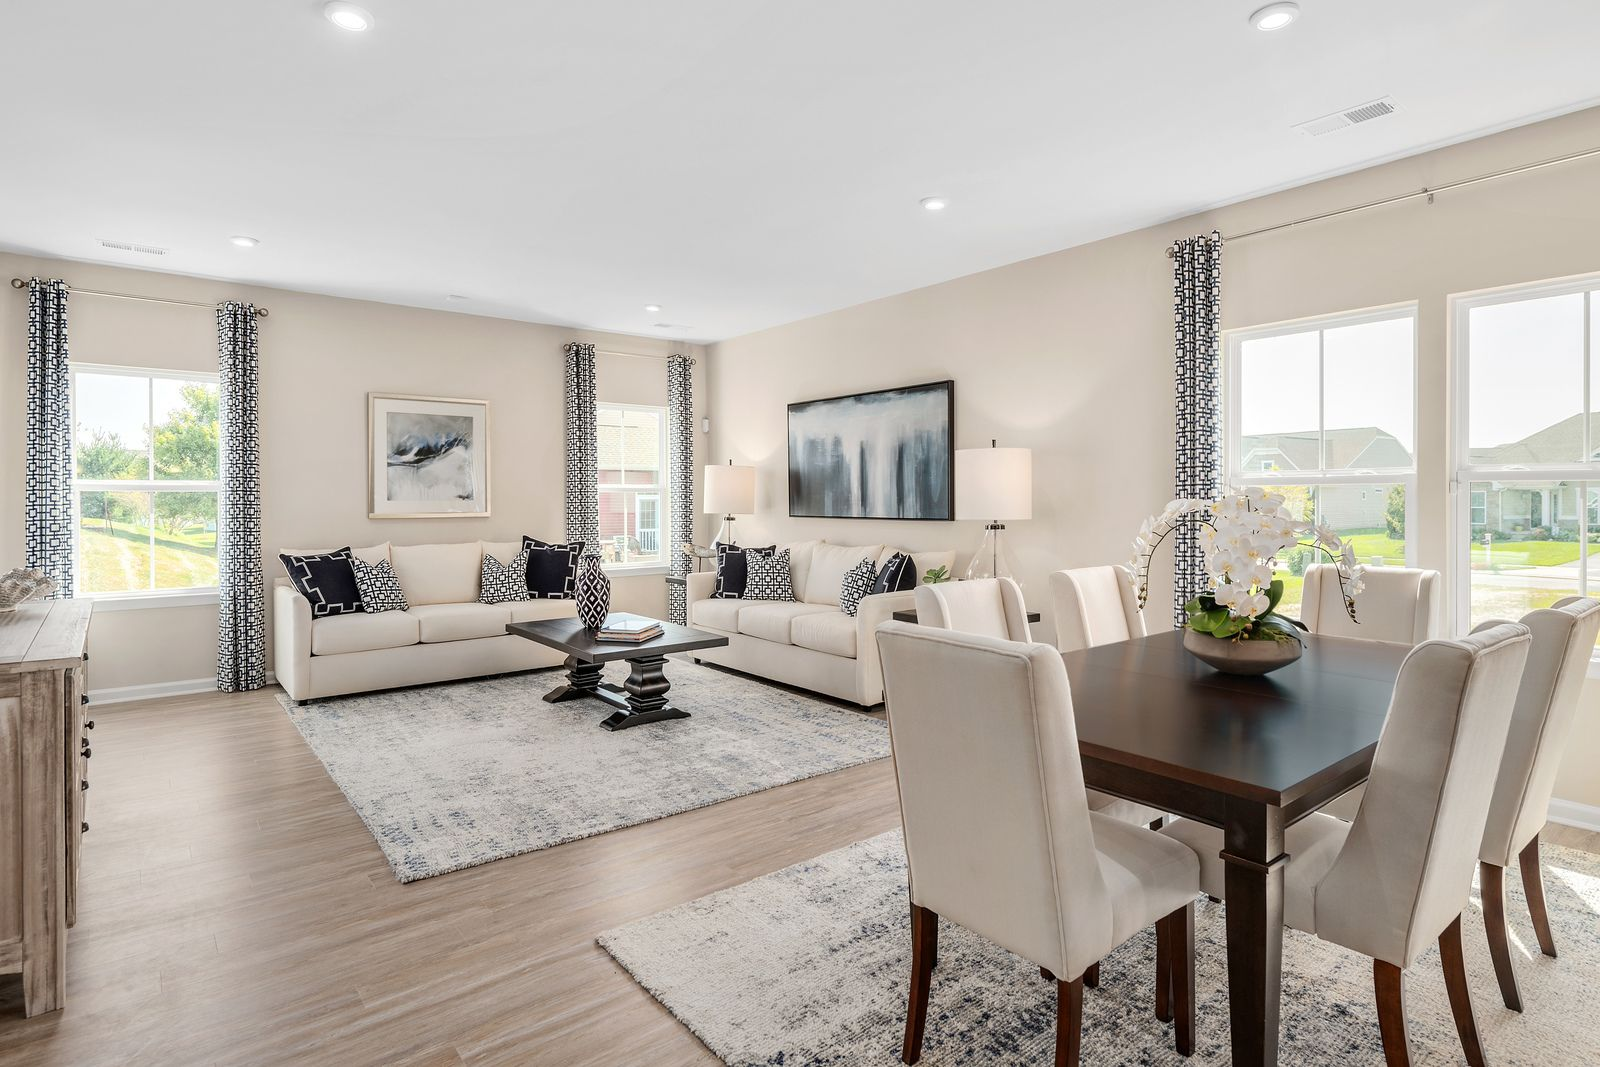 Living Area featured in the Palladio Ranch w/ Finished Lower Level By Ryan Homes in Cincinnati, OH